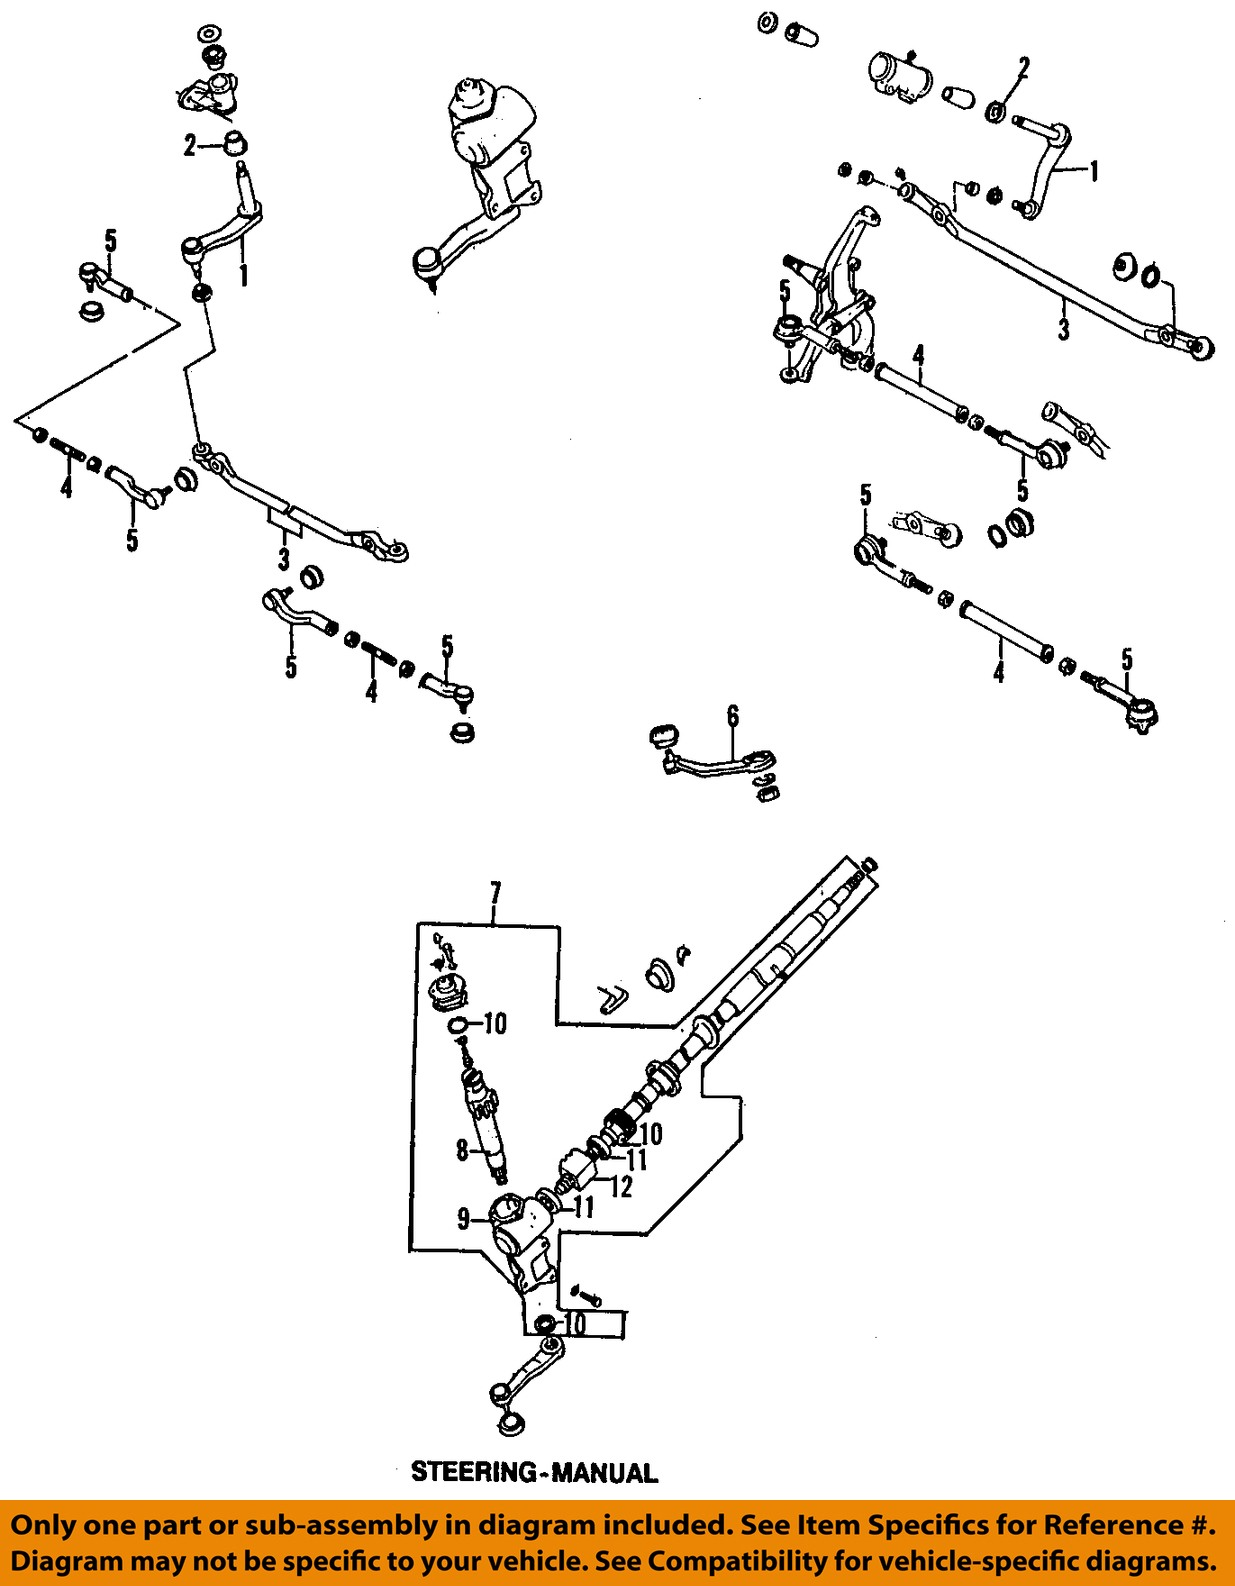 1986 Mazda B2000 Carburetor Diagram For 1988 B2200 Engine 1992 Steering House Wiring Symbols U2022 Swap